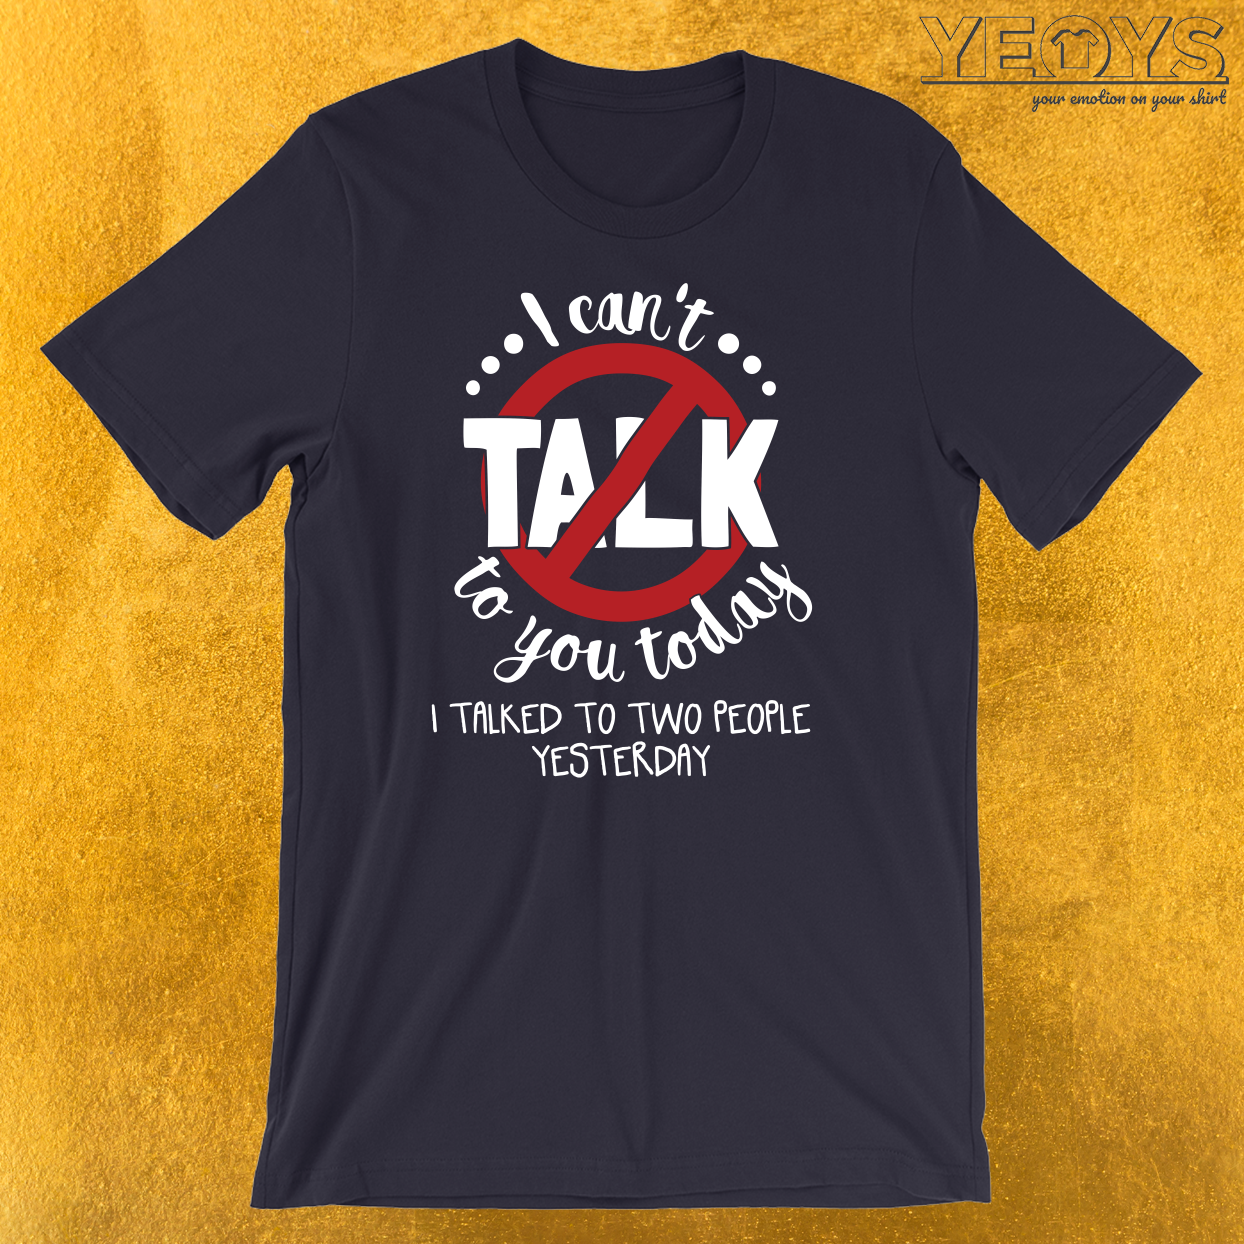 I Can't Talk To You Today Introverts T-Shirt